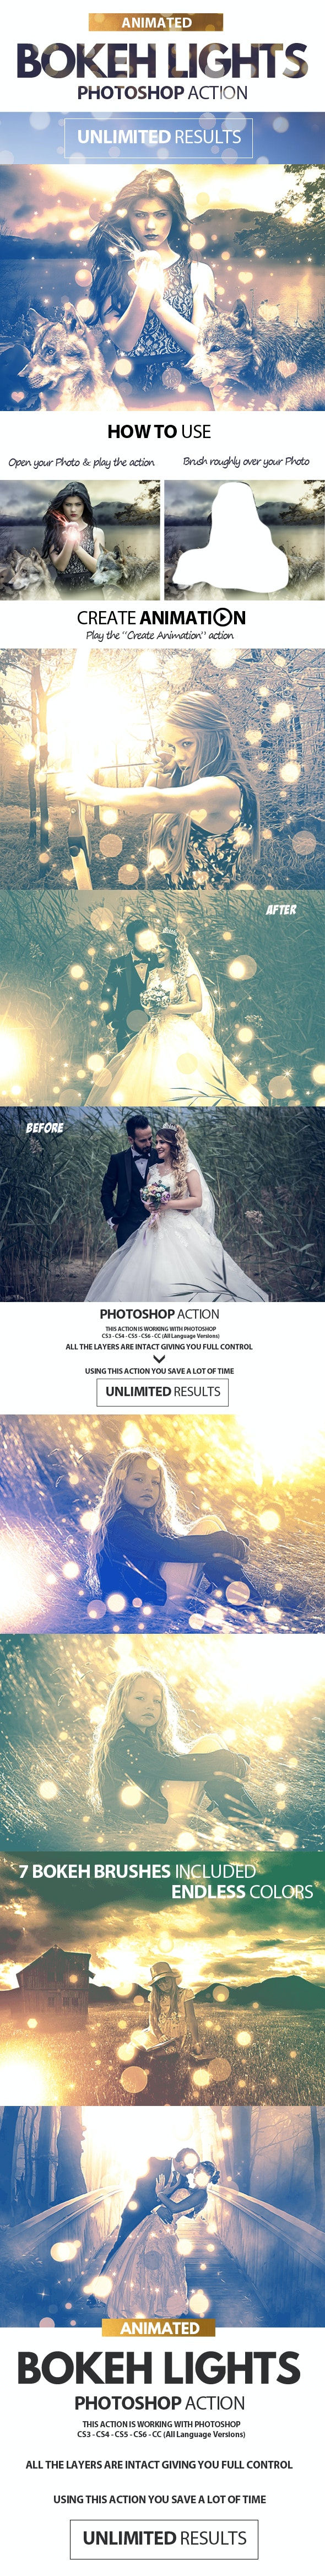 Animated Bokeh Lights Photoshop Action - Photo Effects Actions